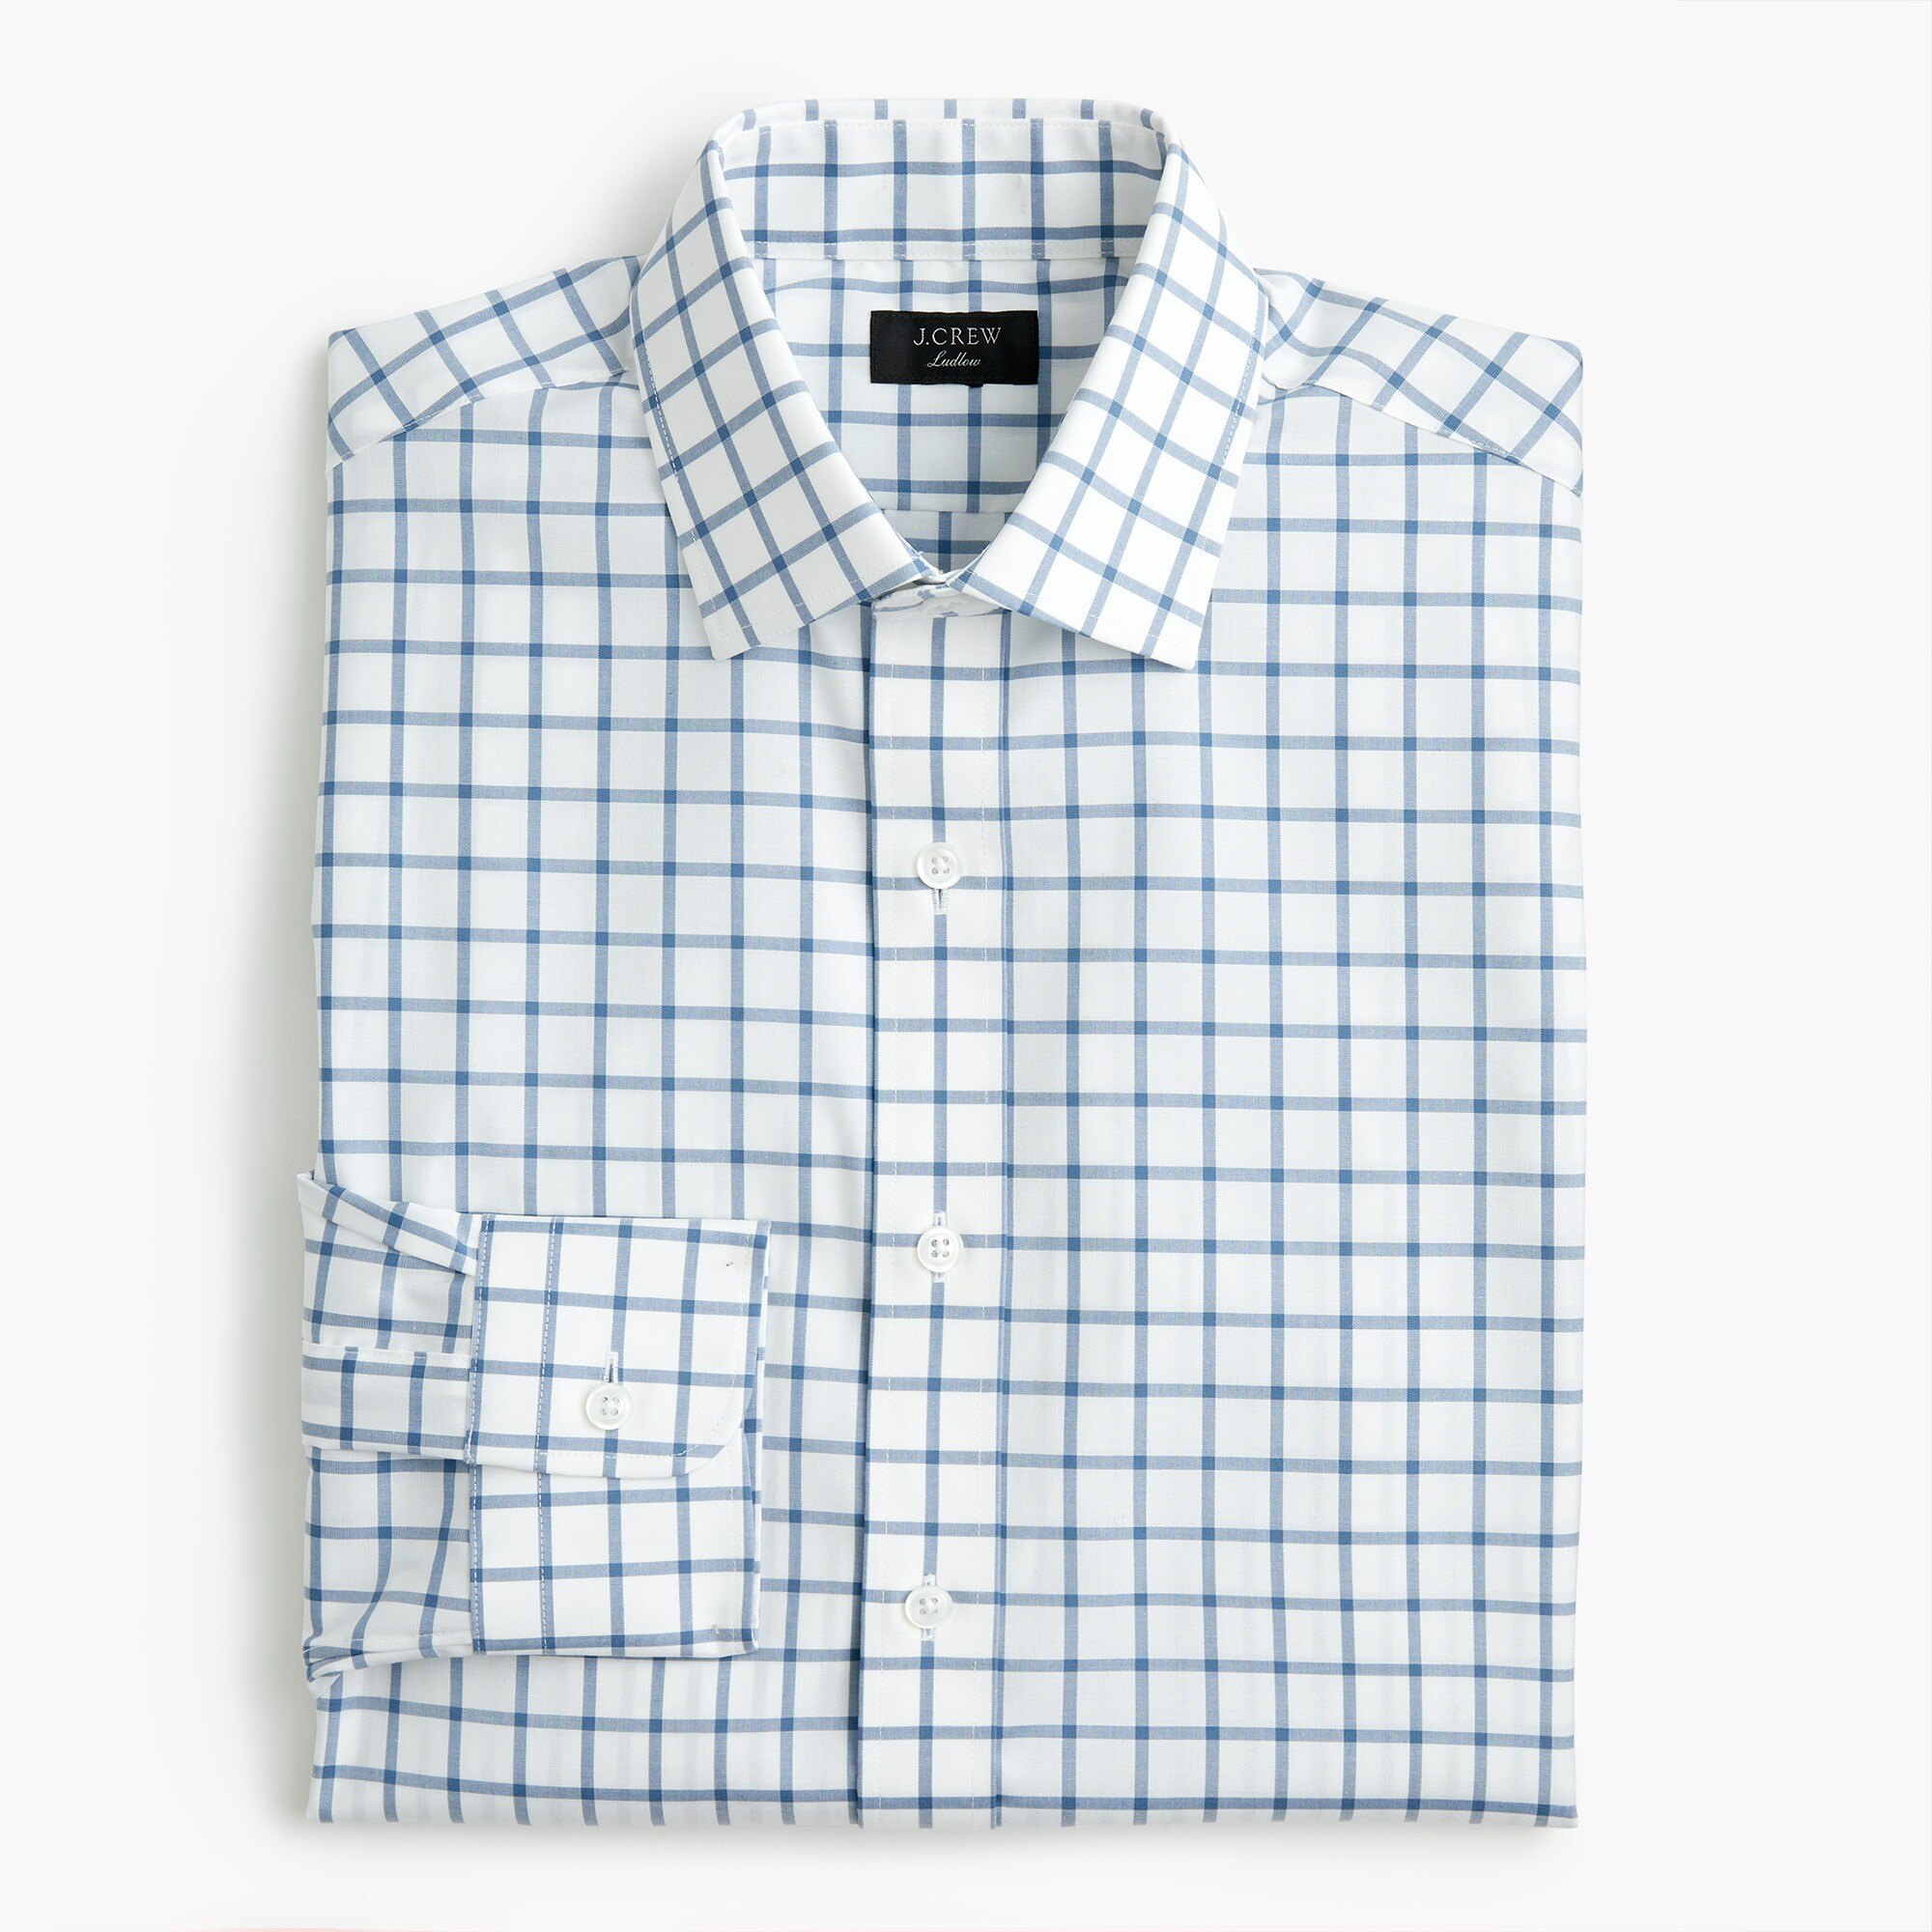 Ludlow slim-fit stretch two-ply easy-care cotton dress shirt in mini windowpane